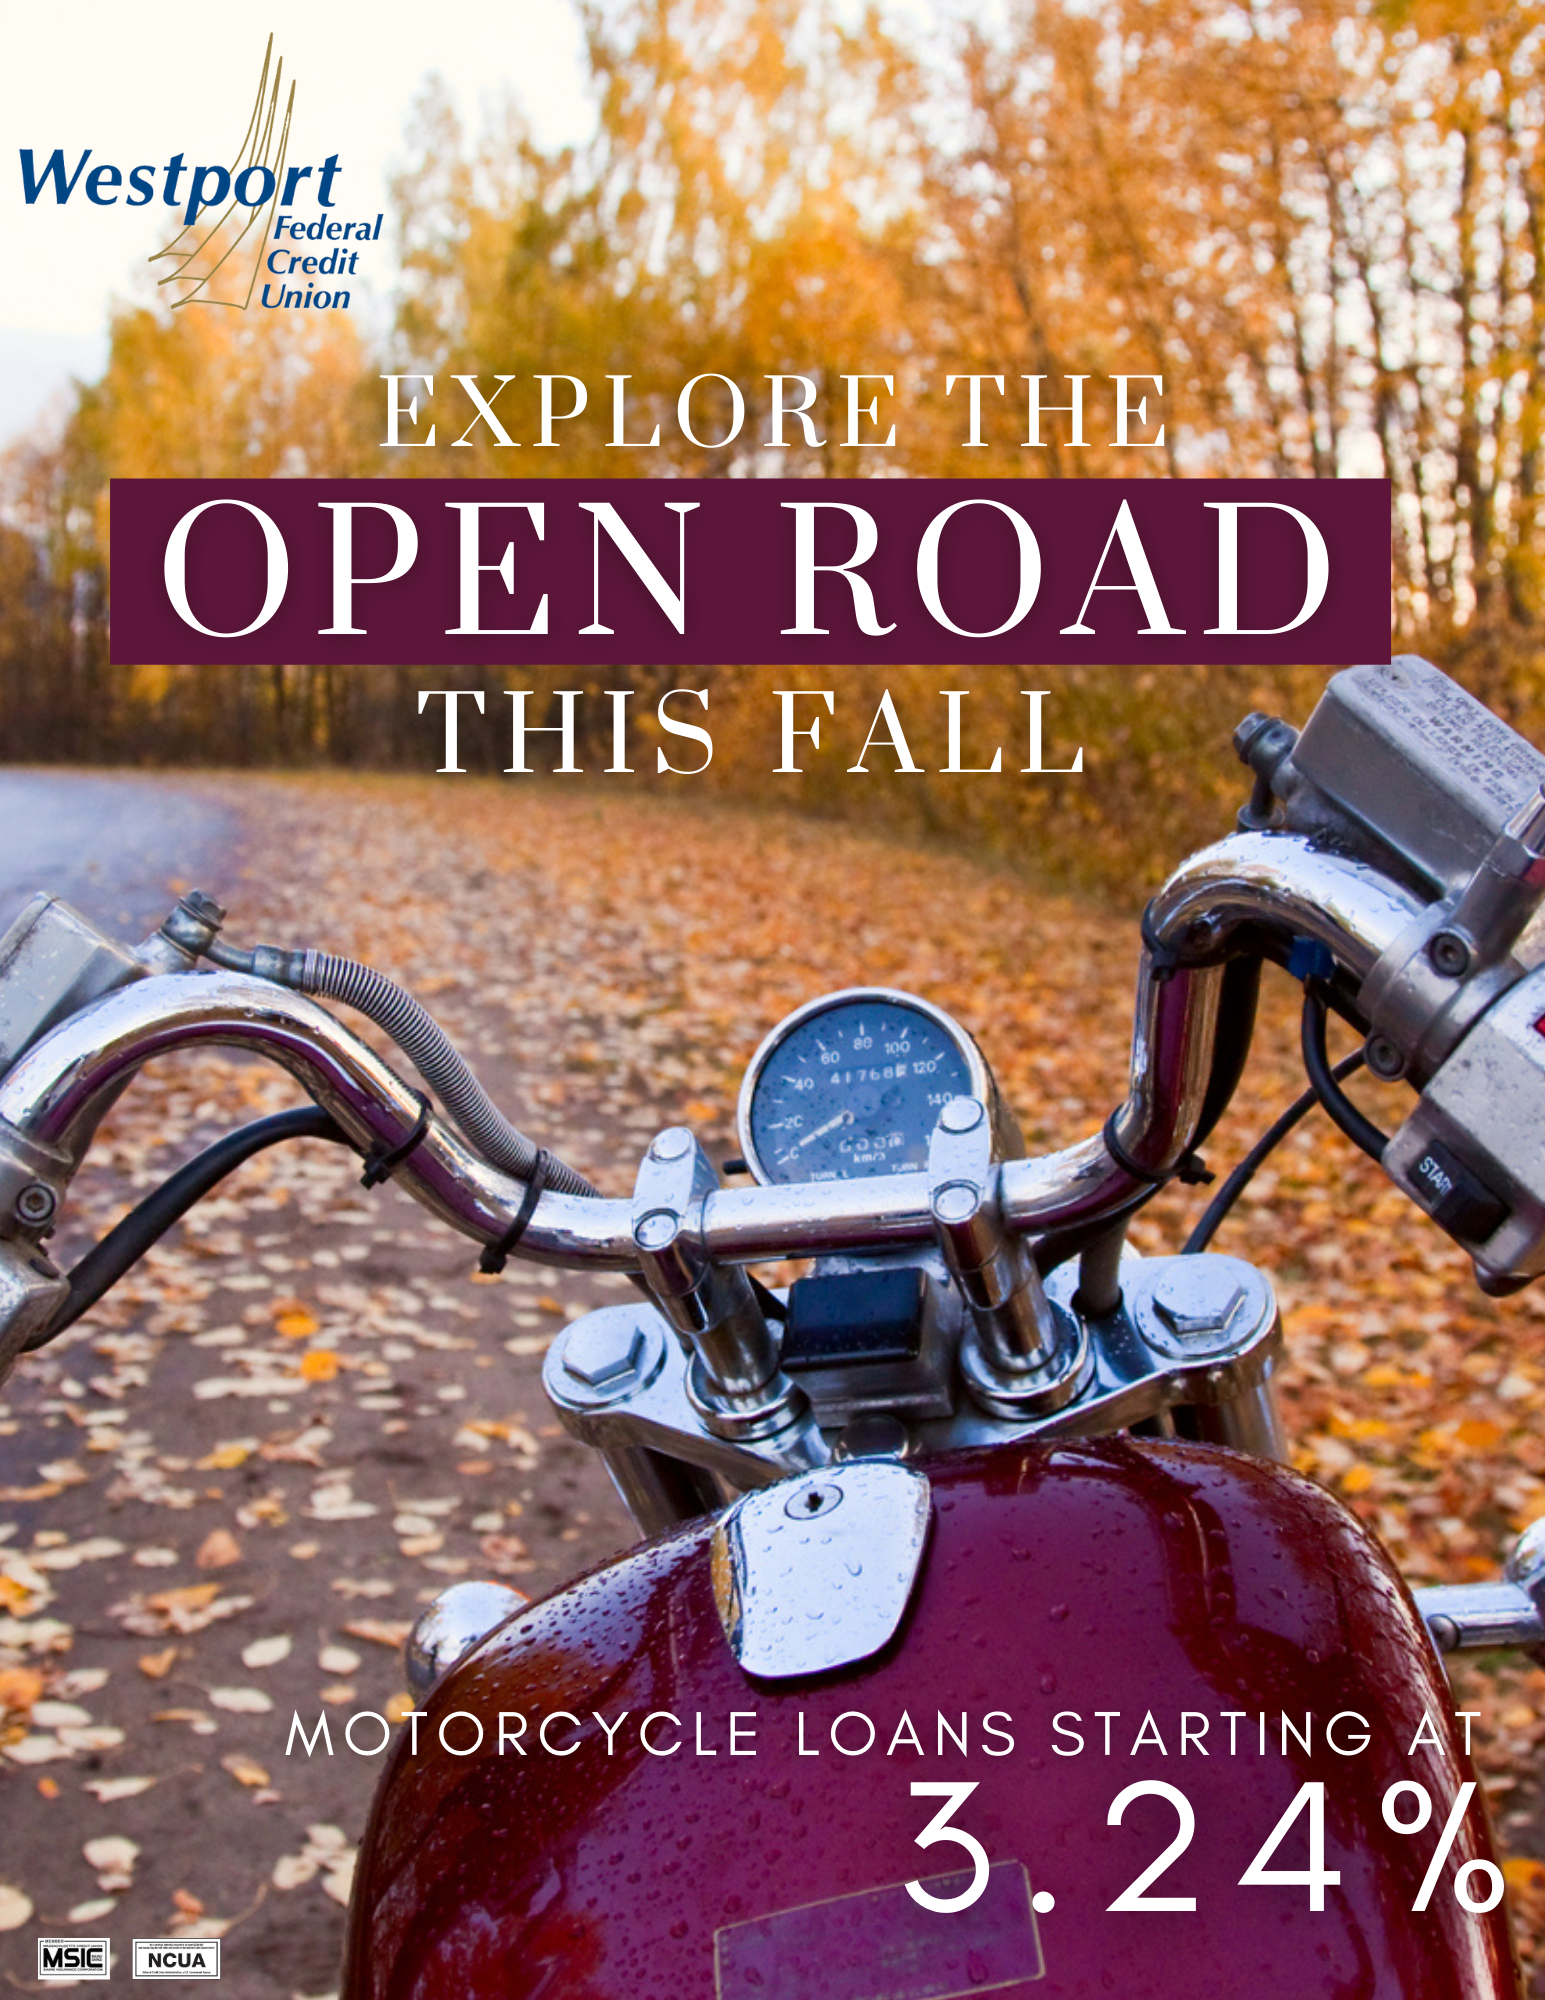 Explore the Open Road with WFCU Motorcycle Loans ...